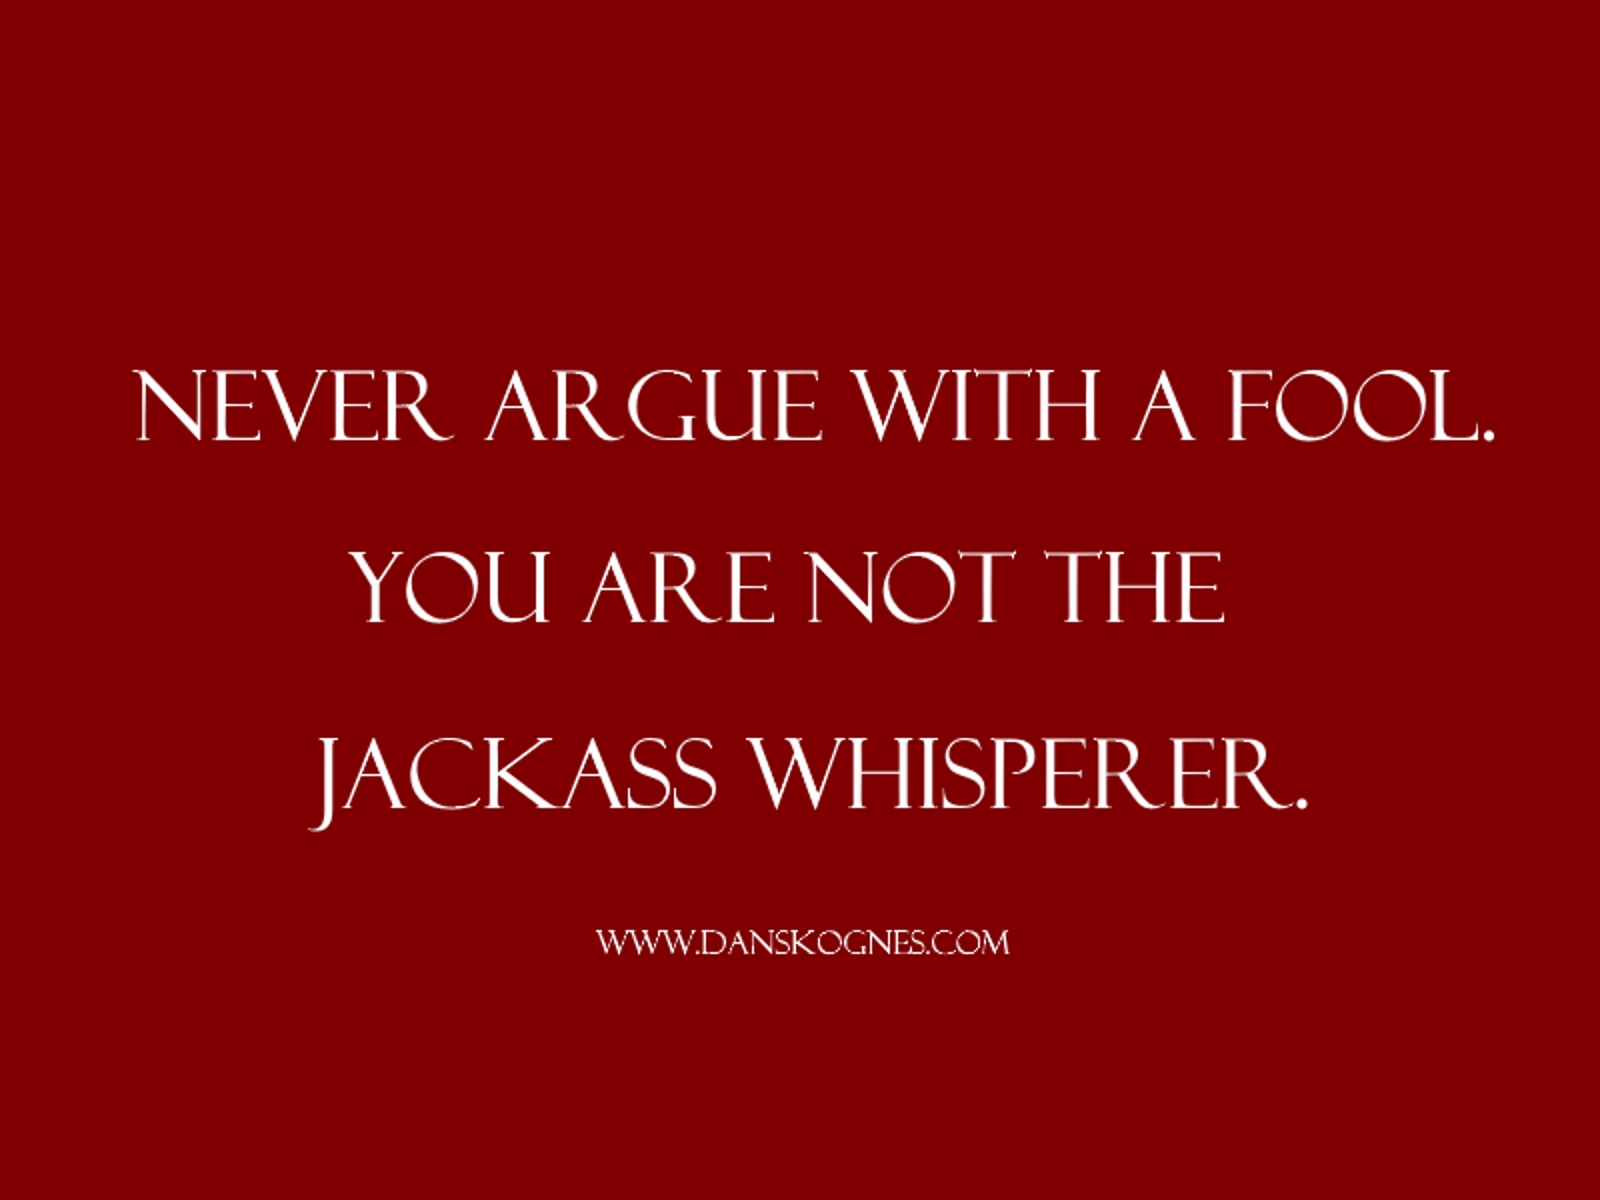 argue with a fool